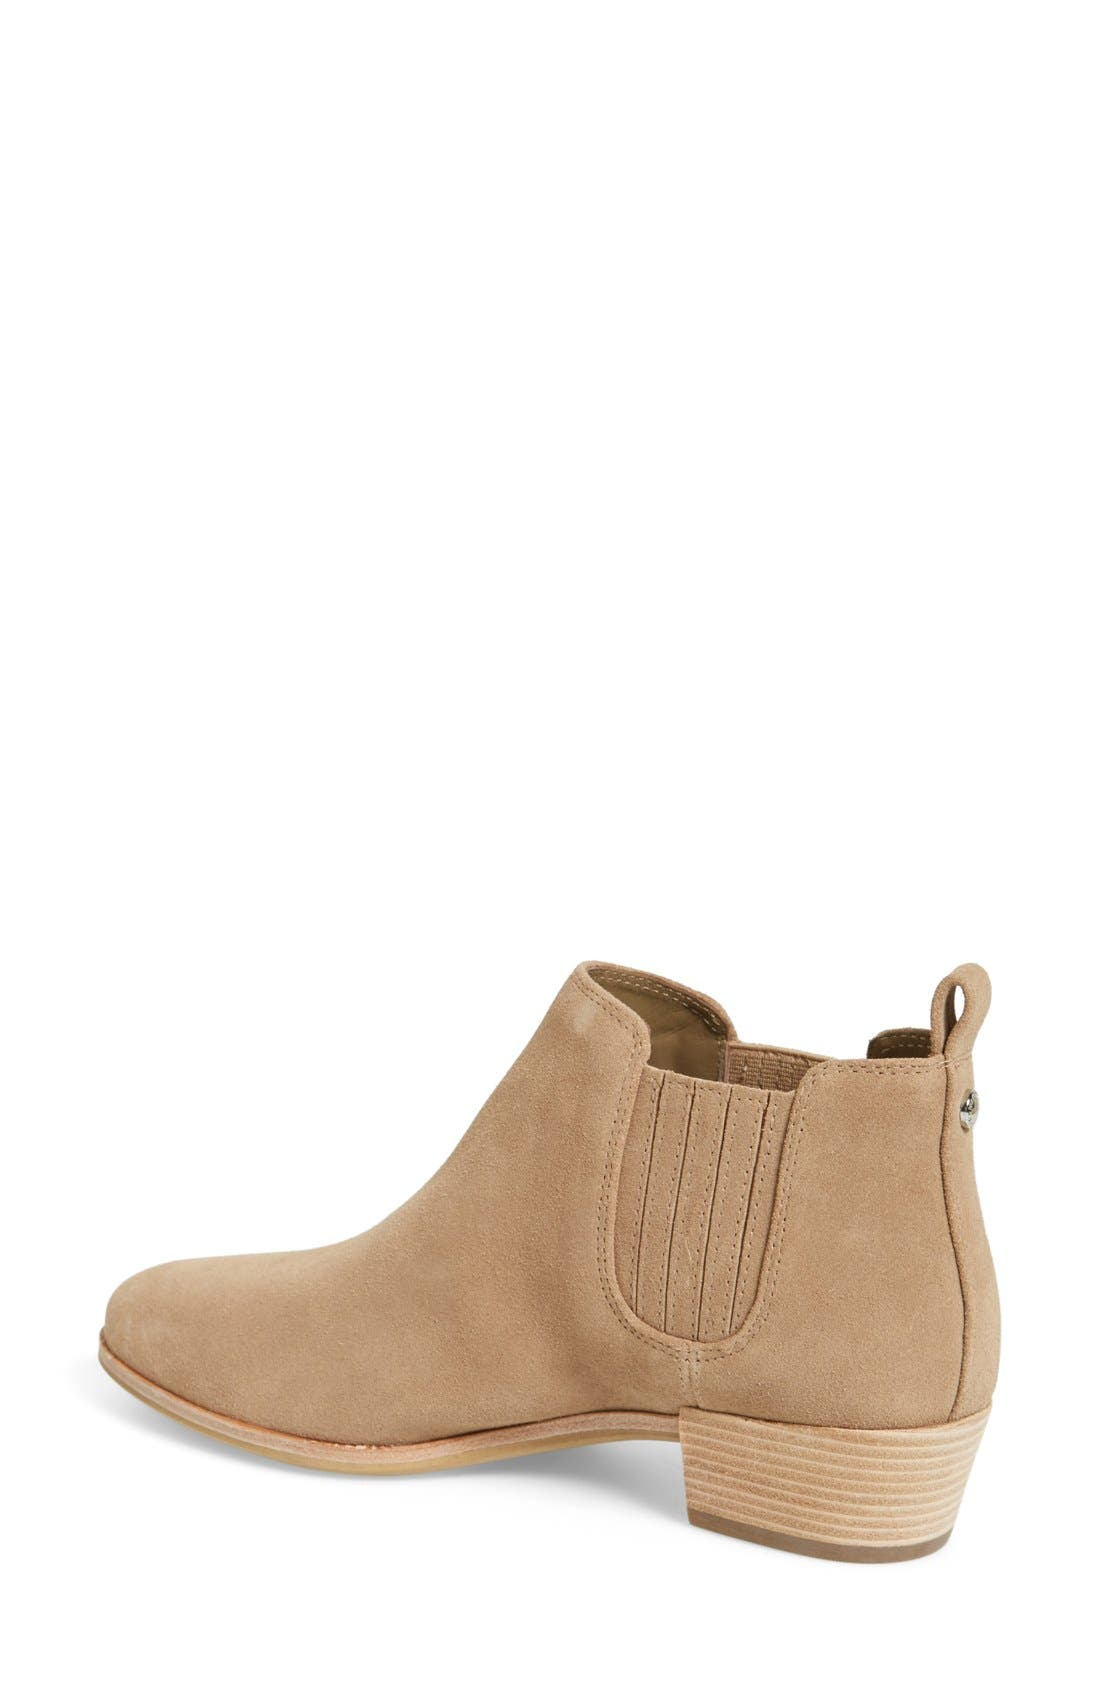 Alternate Image 2  - MICHAEL Michael Kors 'Shaw' Chelsea Boot (Women)